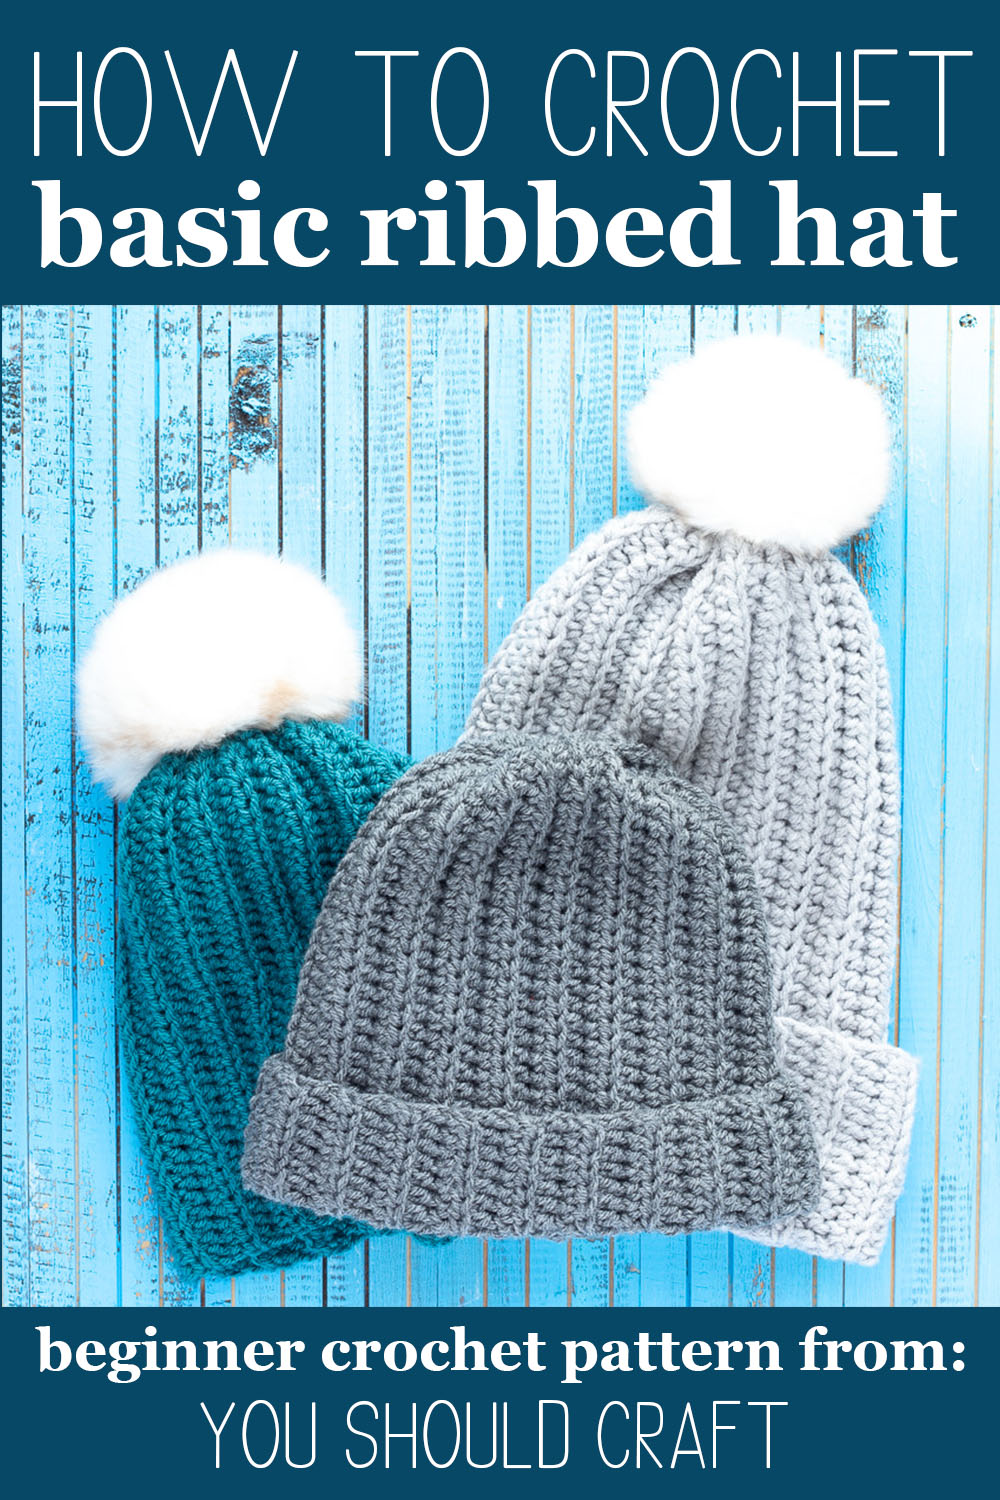 """three crocheted hats with text overlay, """"how to crochet basic ribbed hat - beginner crochet pattern from: you should craft"""""""